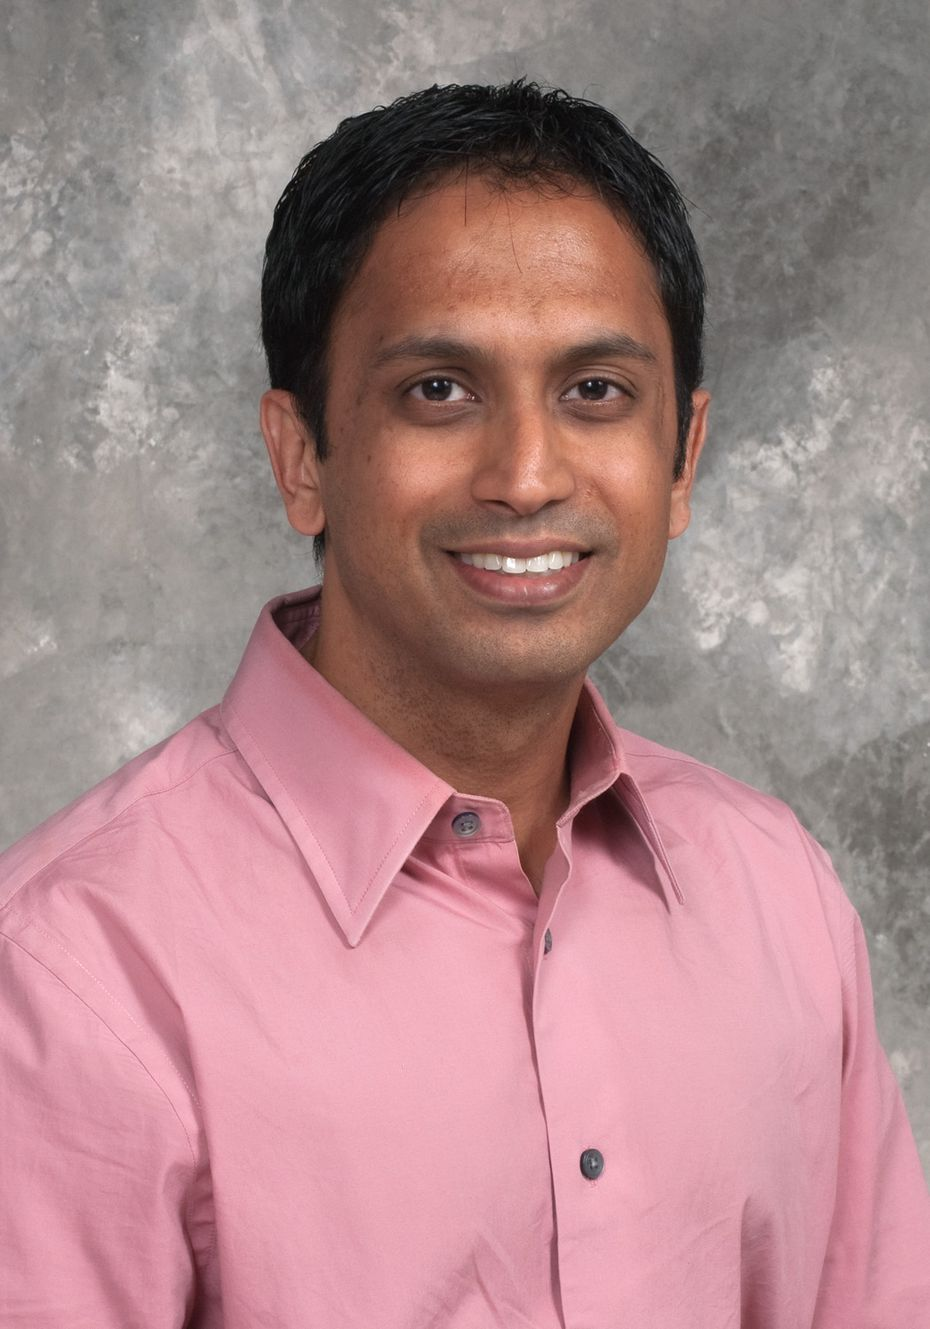 """There's a lot of underrecognition of this disease,"" says Dr. Amit Singal of UT Southwestern Medical Center, who is principal investigator for the North Texas COVID-19 Prevalence Study."